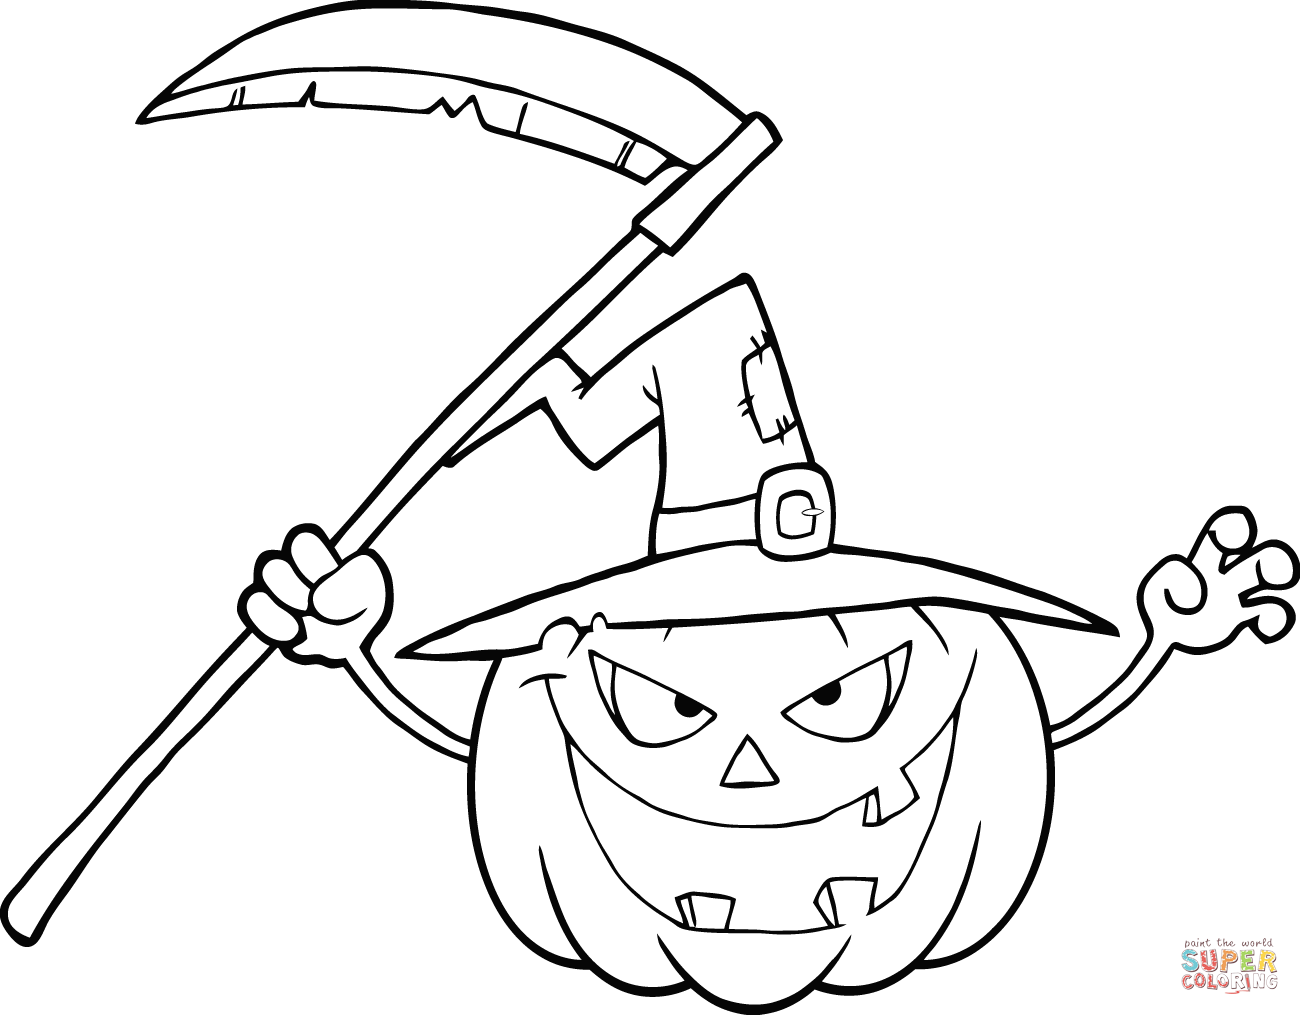 1300x1015 Halloween Pumpkin With Scythe Coloring Page Free Printable